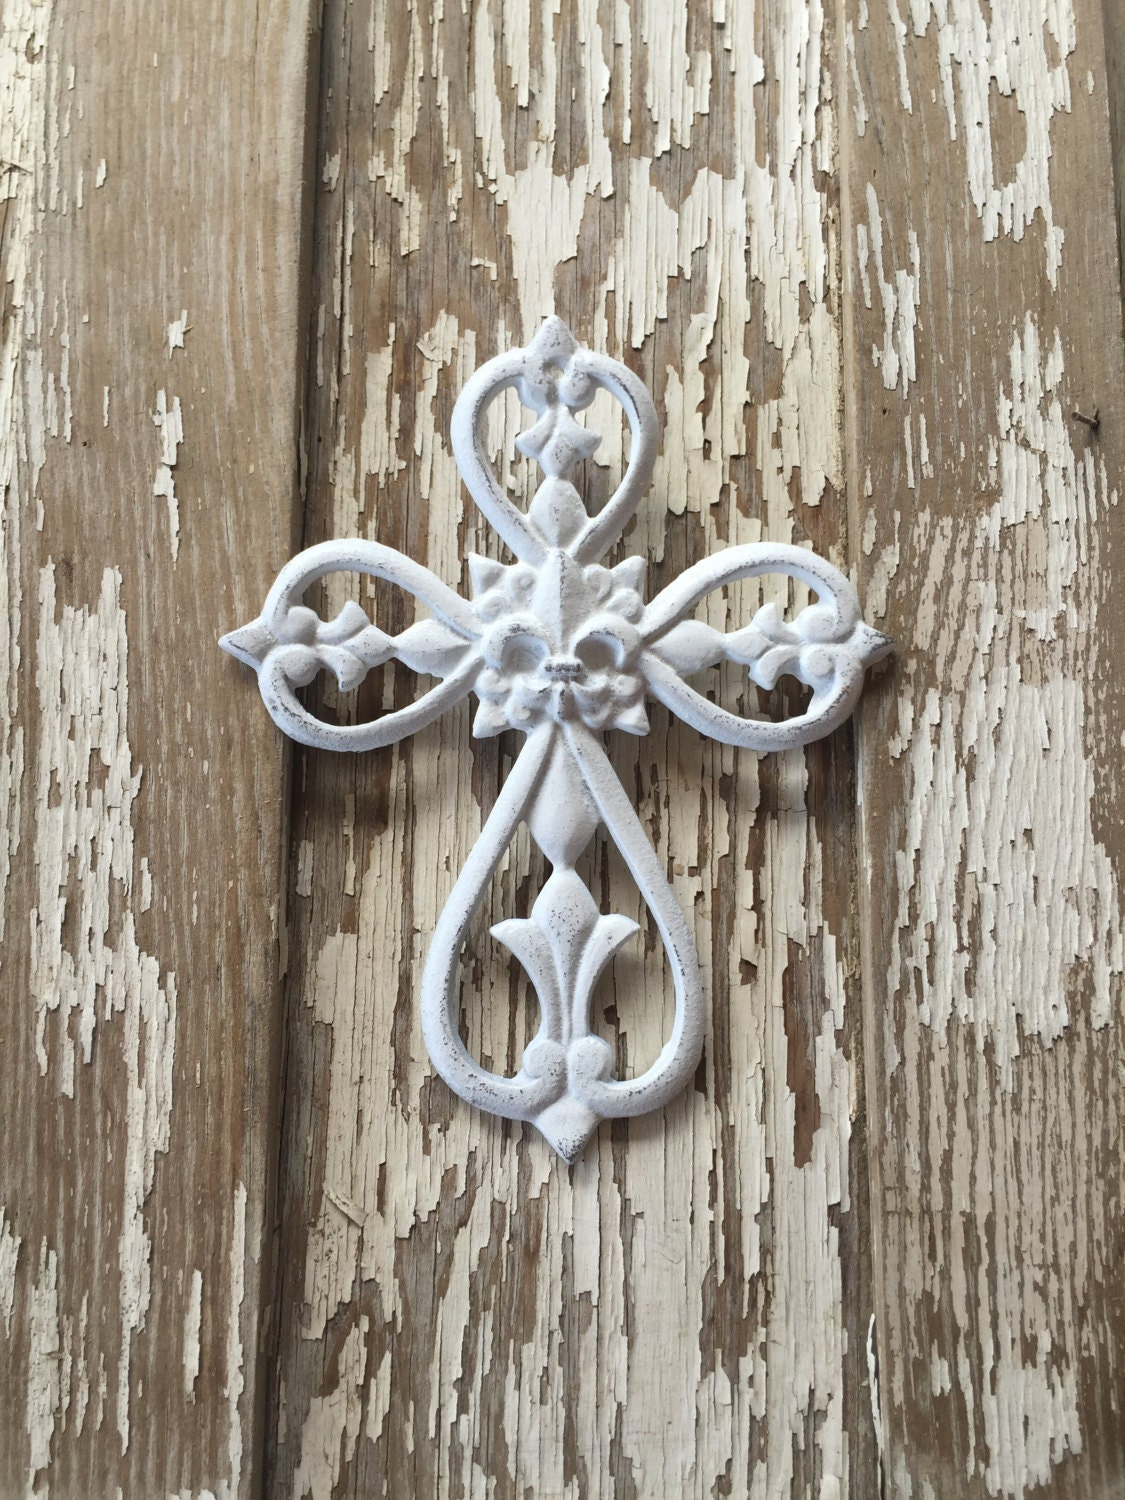 White Distressed Wall Cross Wall Decor With By. Living Room Wall Units. Rooms In Laughlin. Dc Rooms For Rent. Kids Room Organization. Home Theater Decor. China Cabinet Decor. Moon Wall Decor. Decorating Ideas With Red Leather Sofa